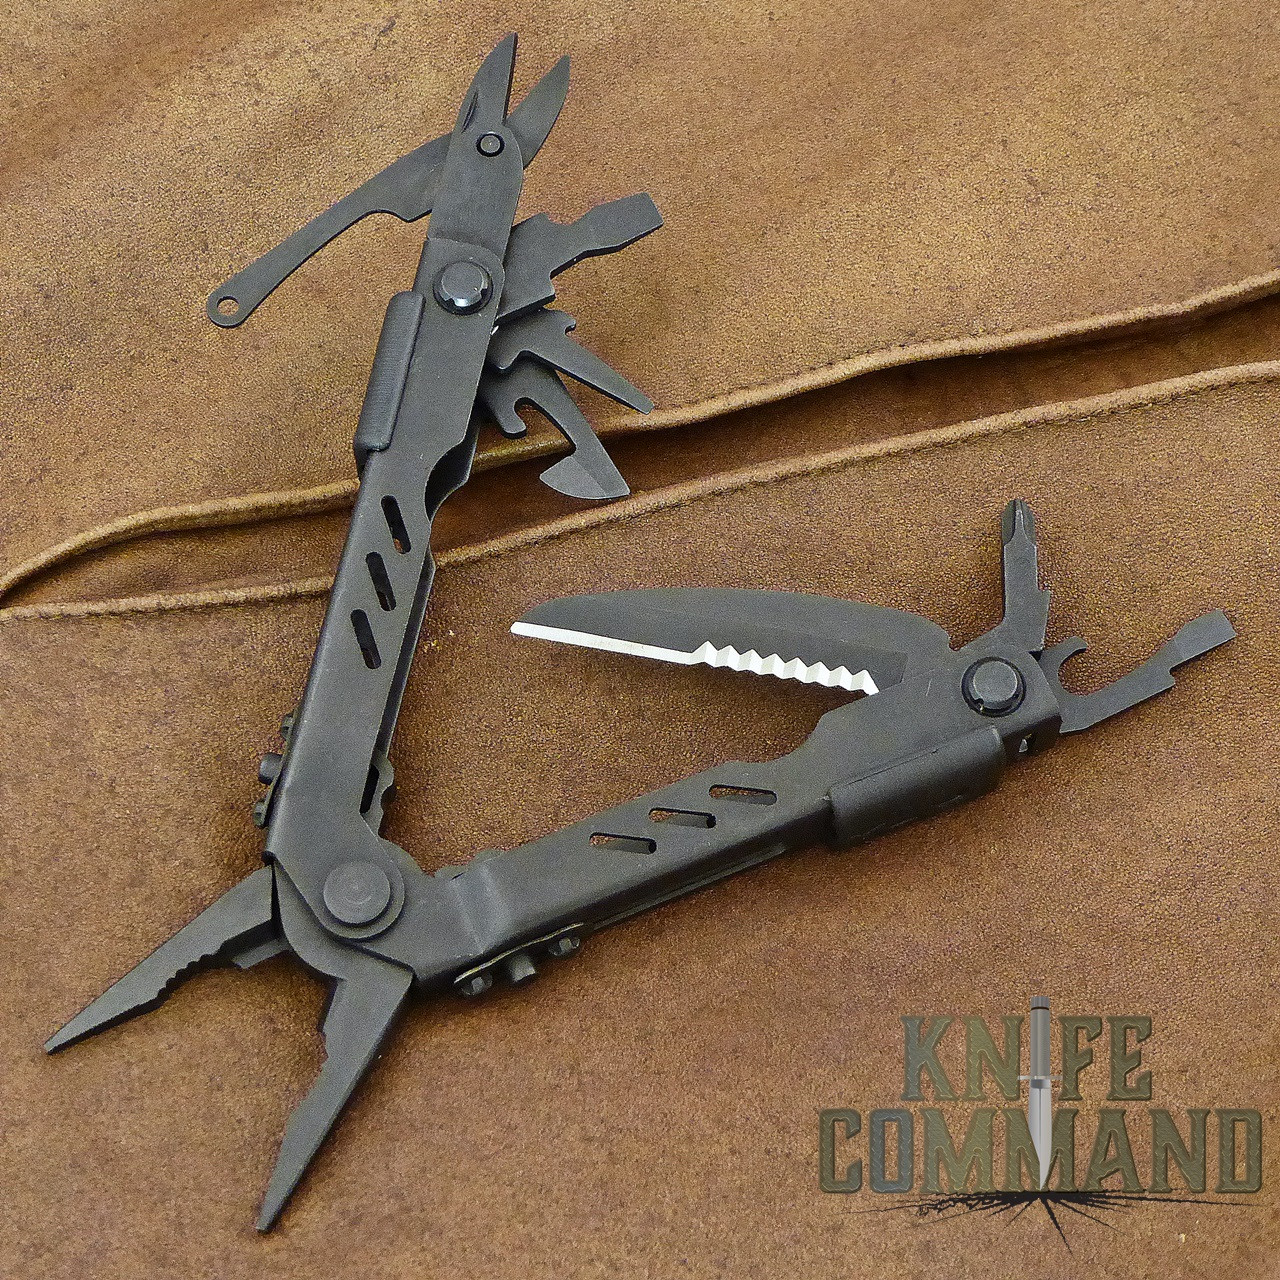 Gerber MP400 Compact Sport Tactical Black Multi-Tool Pliers with Sheath.  12 tools, compact size.